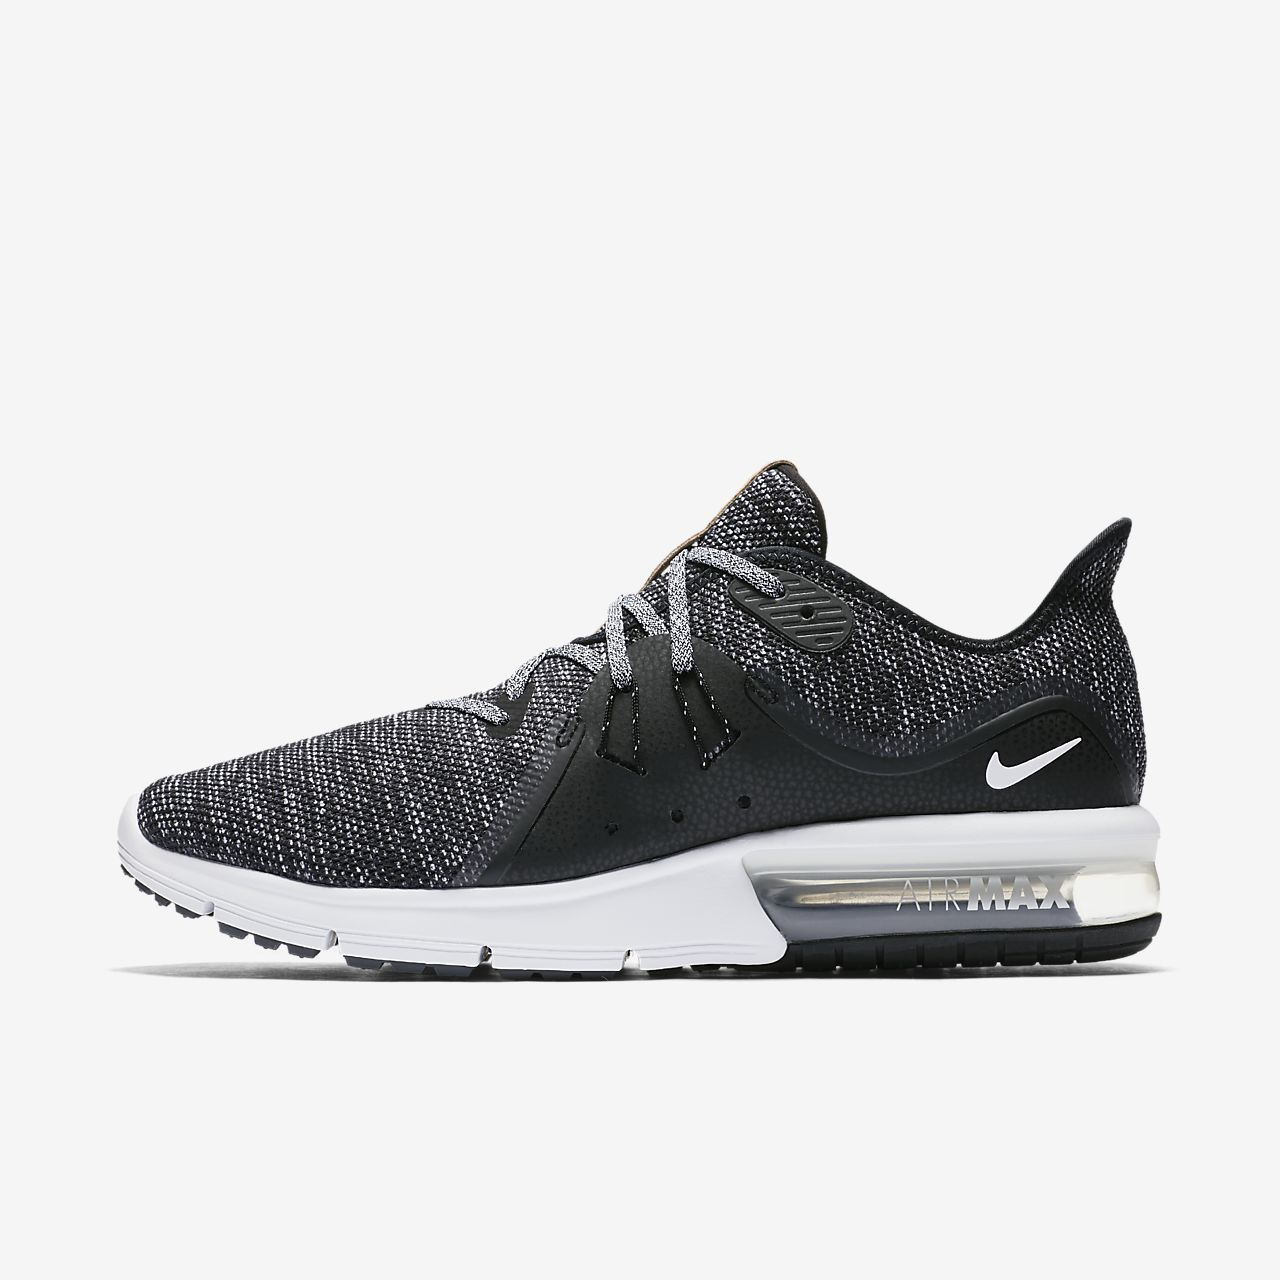 quality design 2cd91 65094 ... Nike Air Max Sequent 3 Mens Shoe